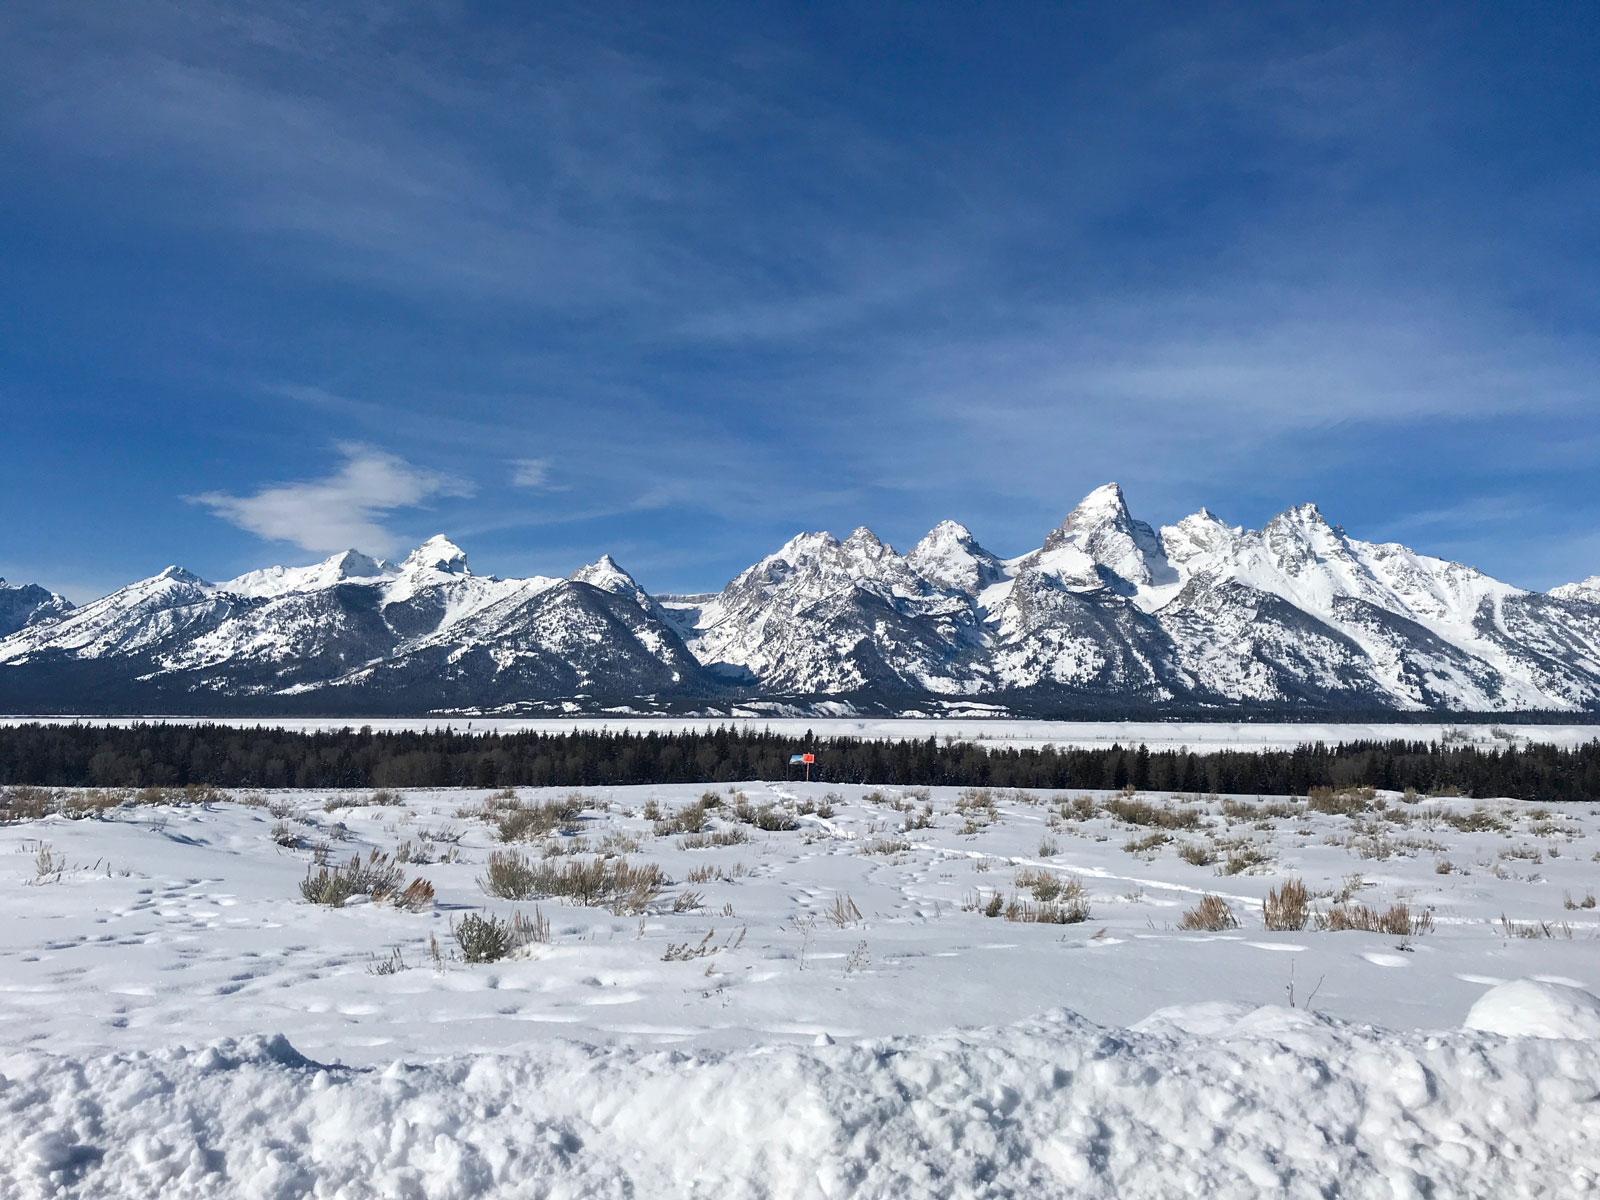 100 Hours in Jackson, Wyoming: Where to Eat, Drink and Play Like a Local